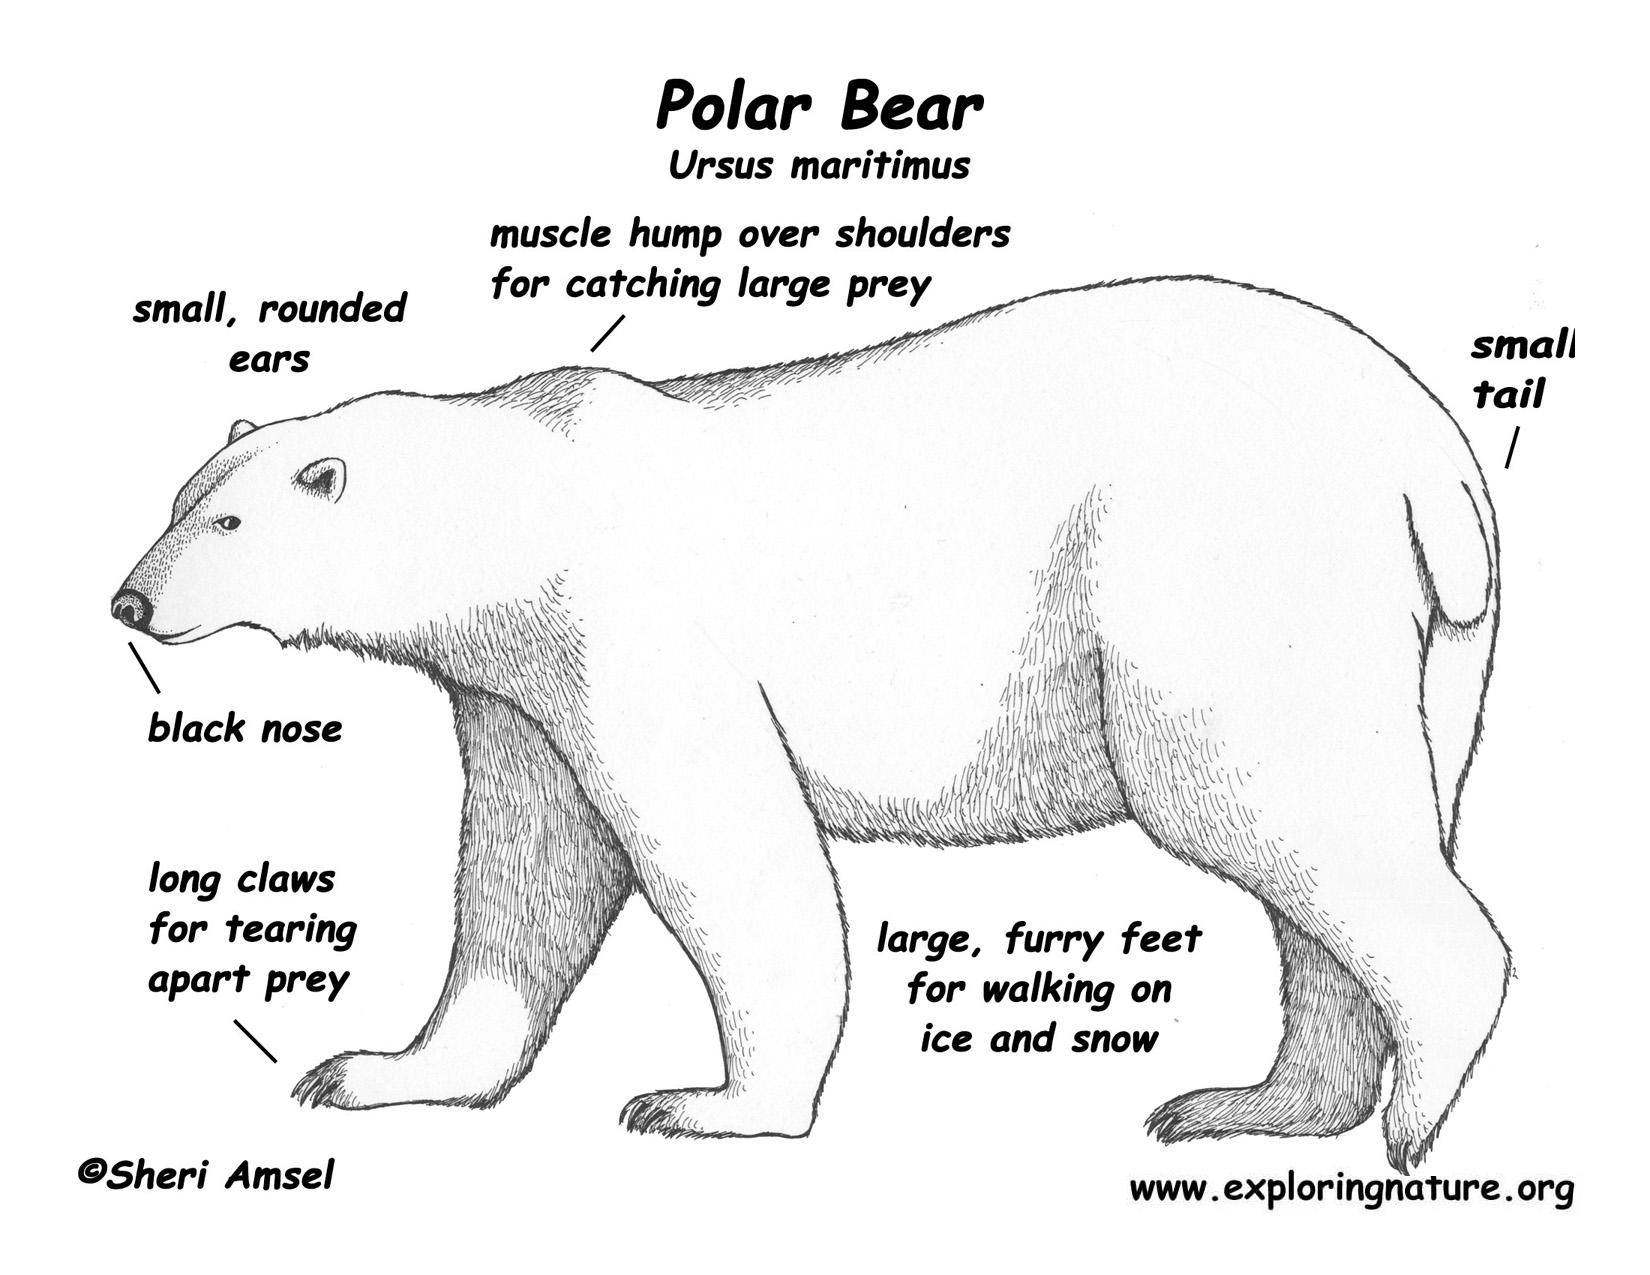 Polar Bear Body Parts Diagram